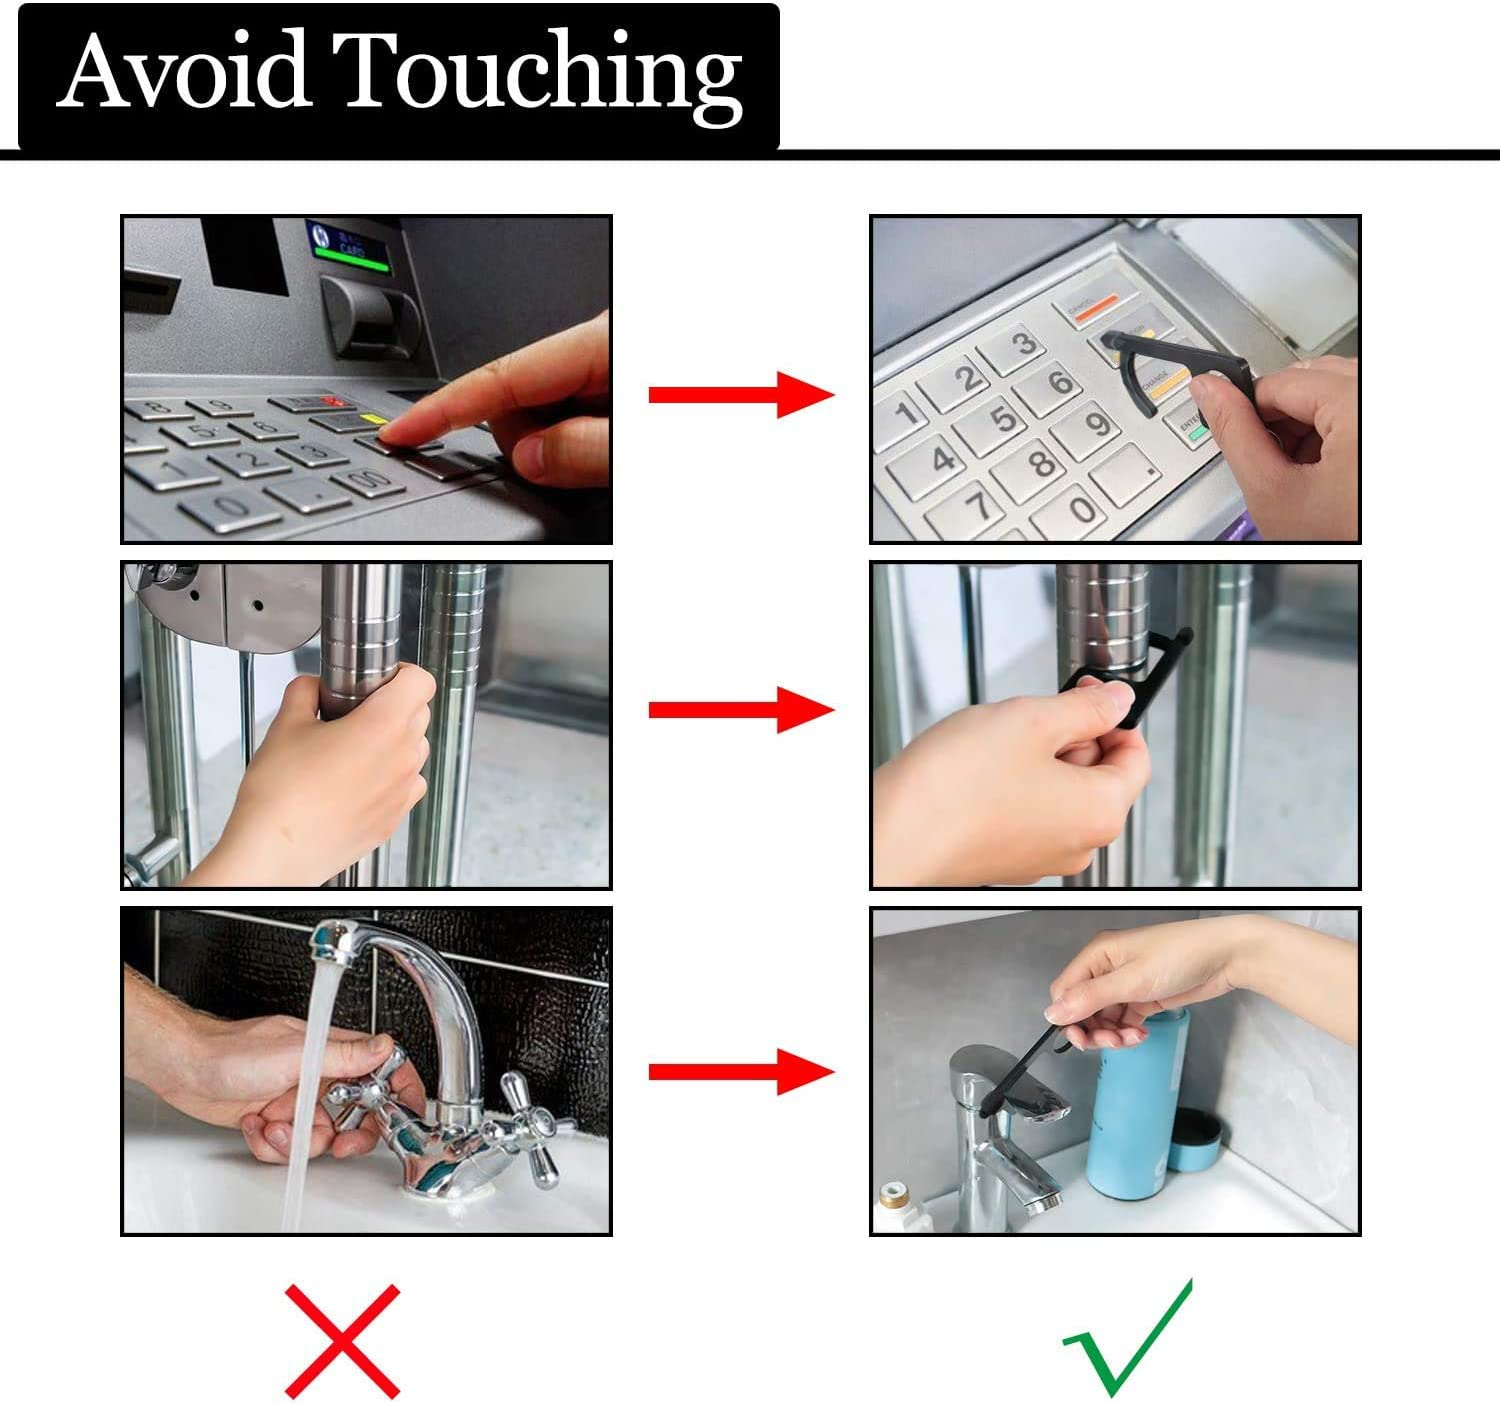 3Pack Anti Touch Door Opener Tool,Non Contact Door Opener with Enclosed Stylus,Jabcina Hands Free EDC Button Pusher to Keep Safe and Hygiene in Public Black,Silver,Golden